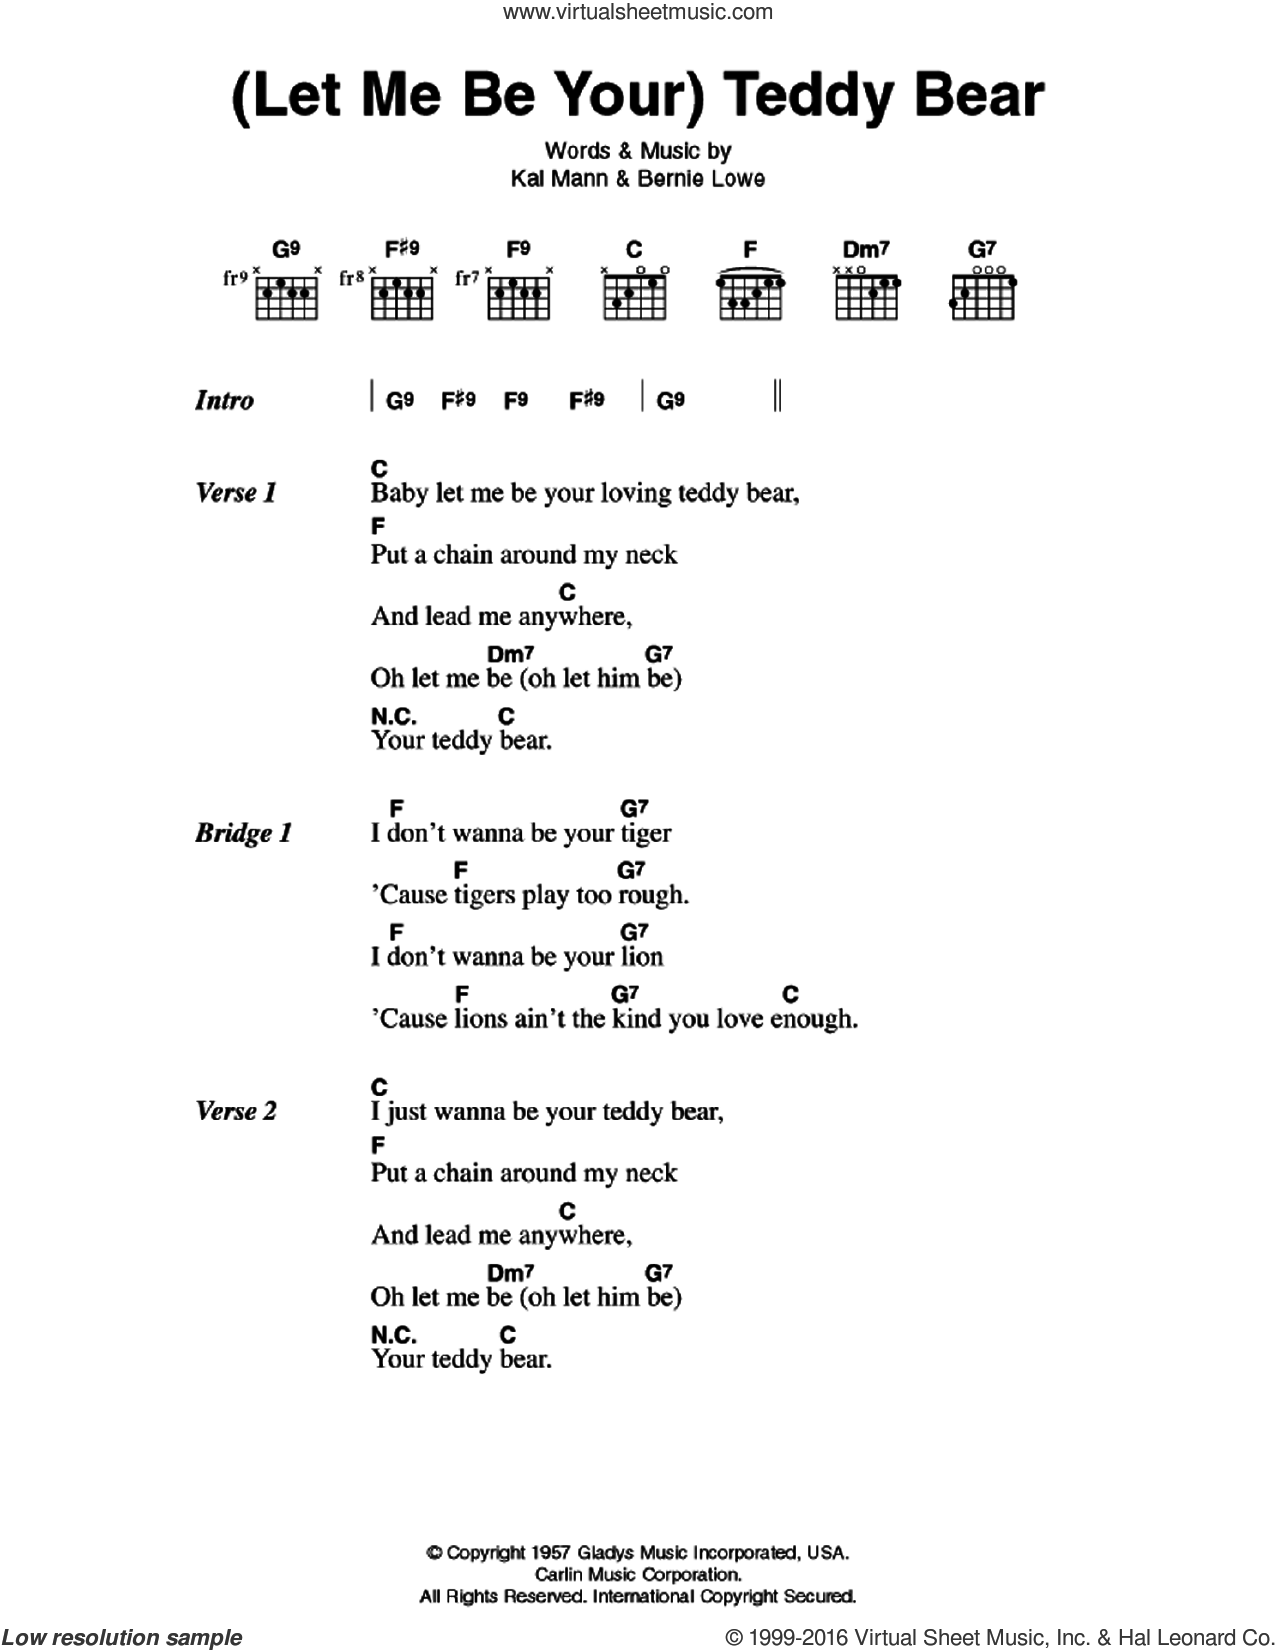 (Let Me Be Your) Teddy Bear sheet music for guitar (chords) by Elvis Presley, Bernie Lowe and Kal Mann, intermediate